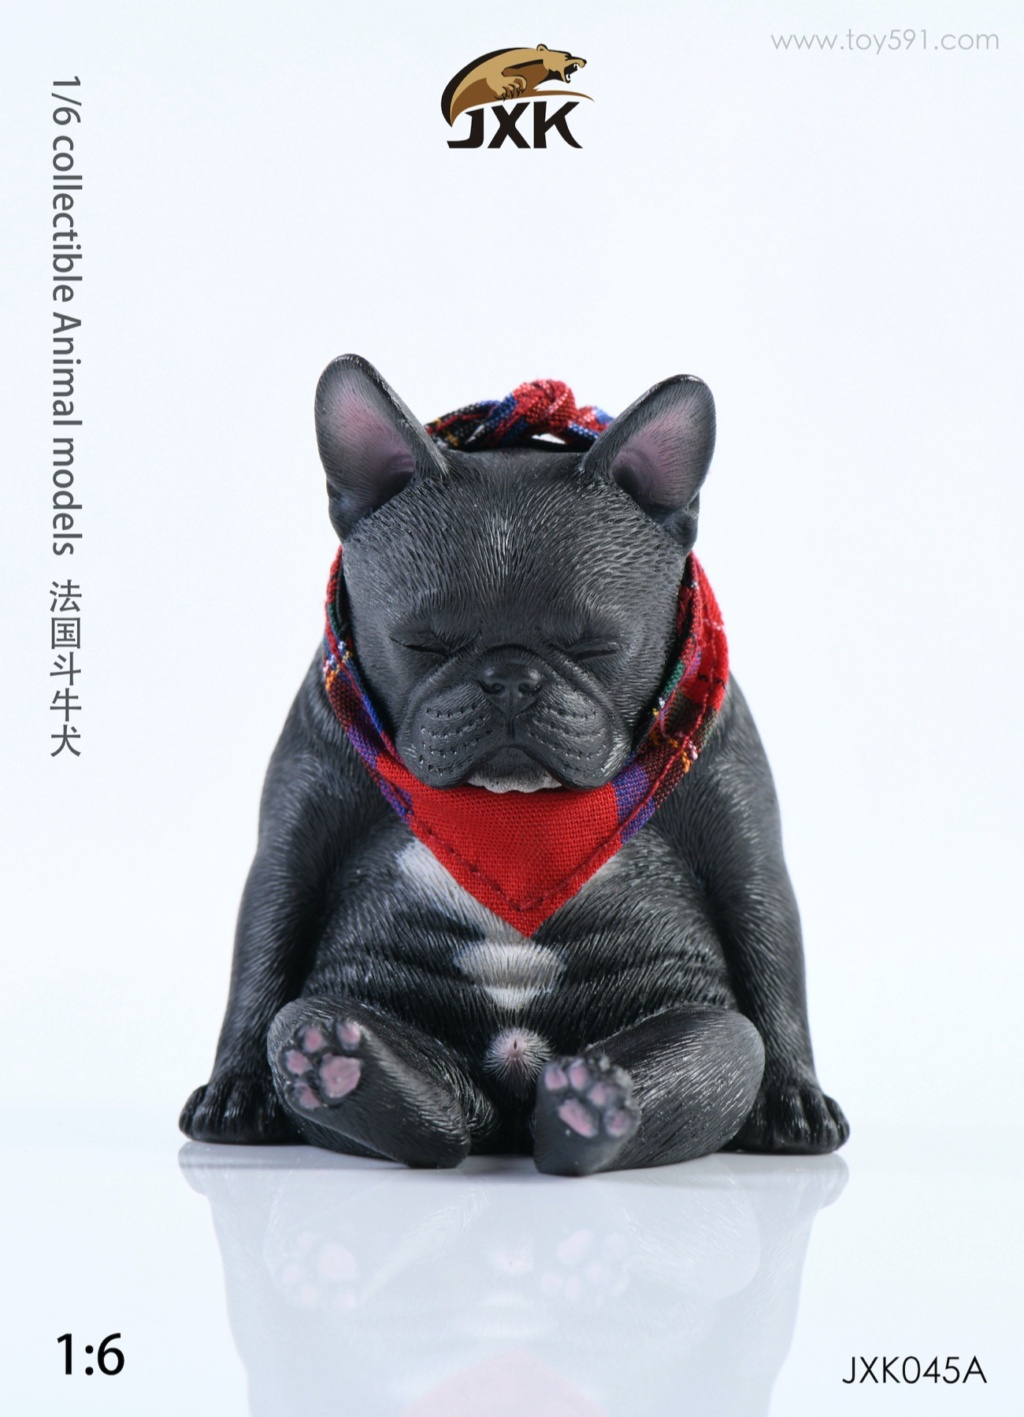 Dog - NEW PRODUCT: JXK 1/6 Decadent Dog JXK045 French Bulldog + Scarf Bf0a1710